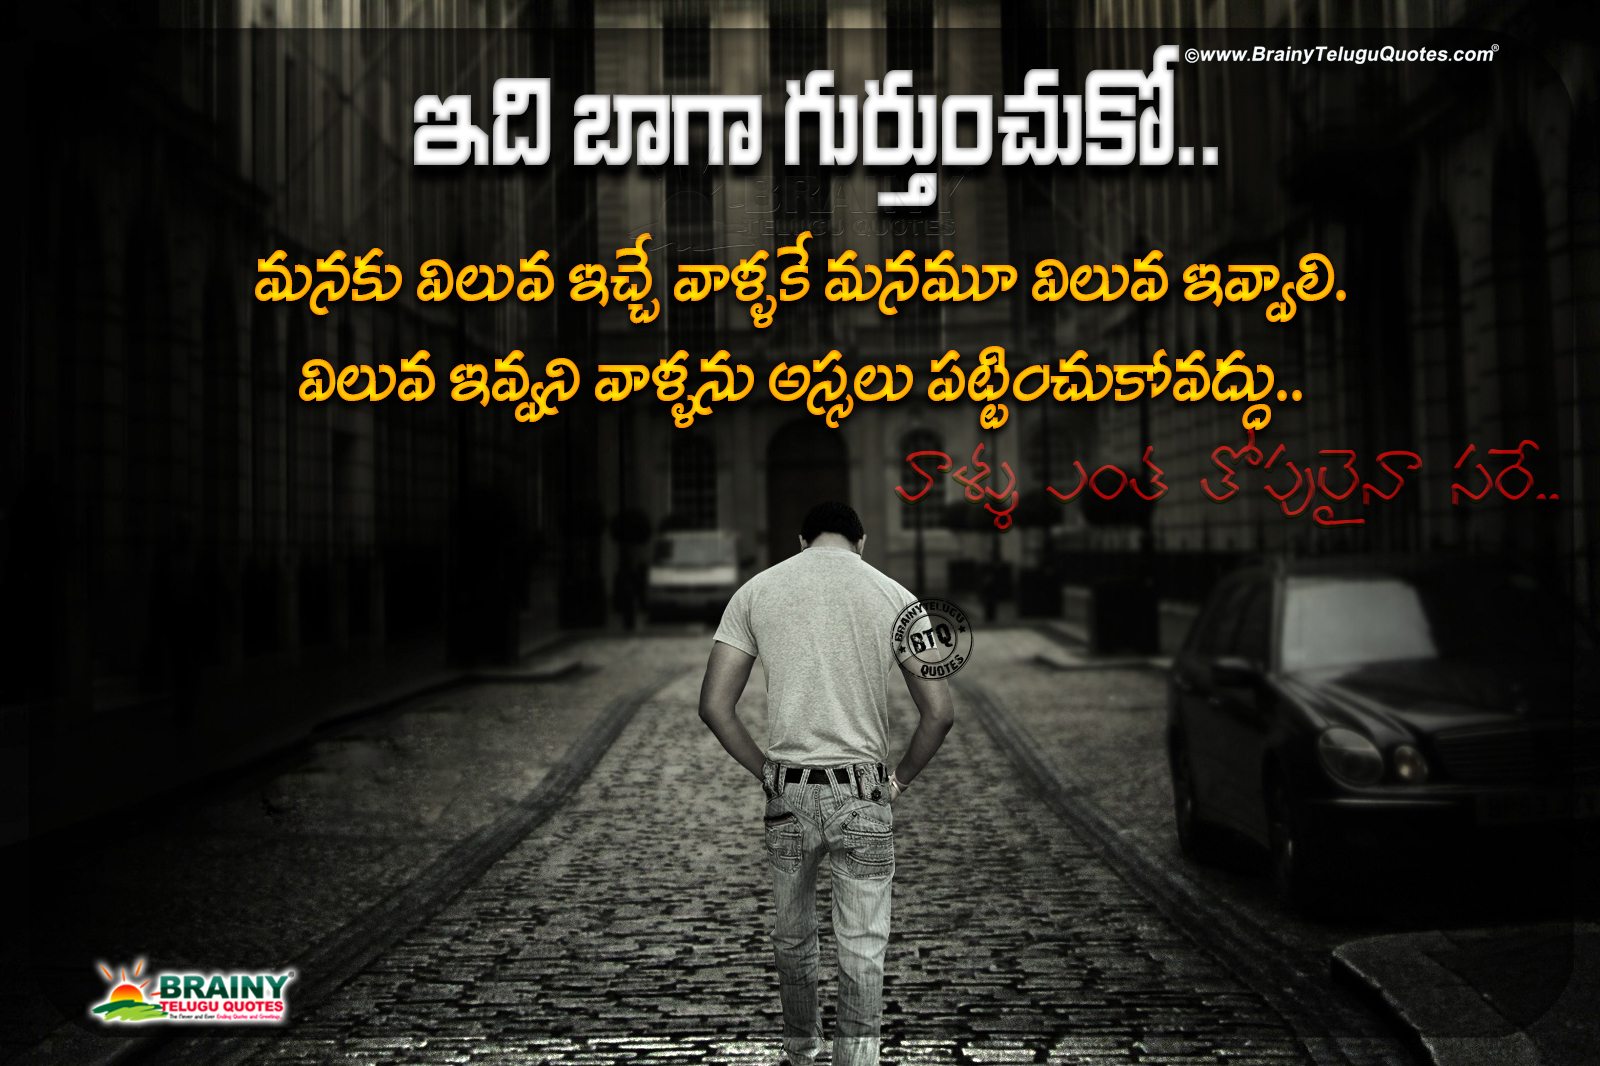 Best Self Respect Words In Telugu Nice Telugu Motivational Life Changing Quotes Hd Wallpapers Brainyteluguquotes Comtelugu Quotes English Quotes Hindi Quotes Tamil Quotes Greetings